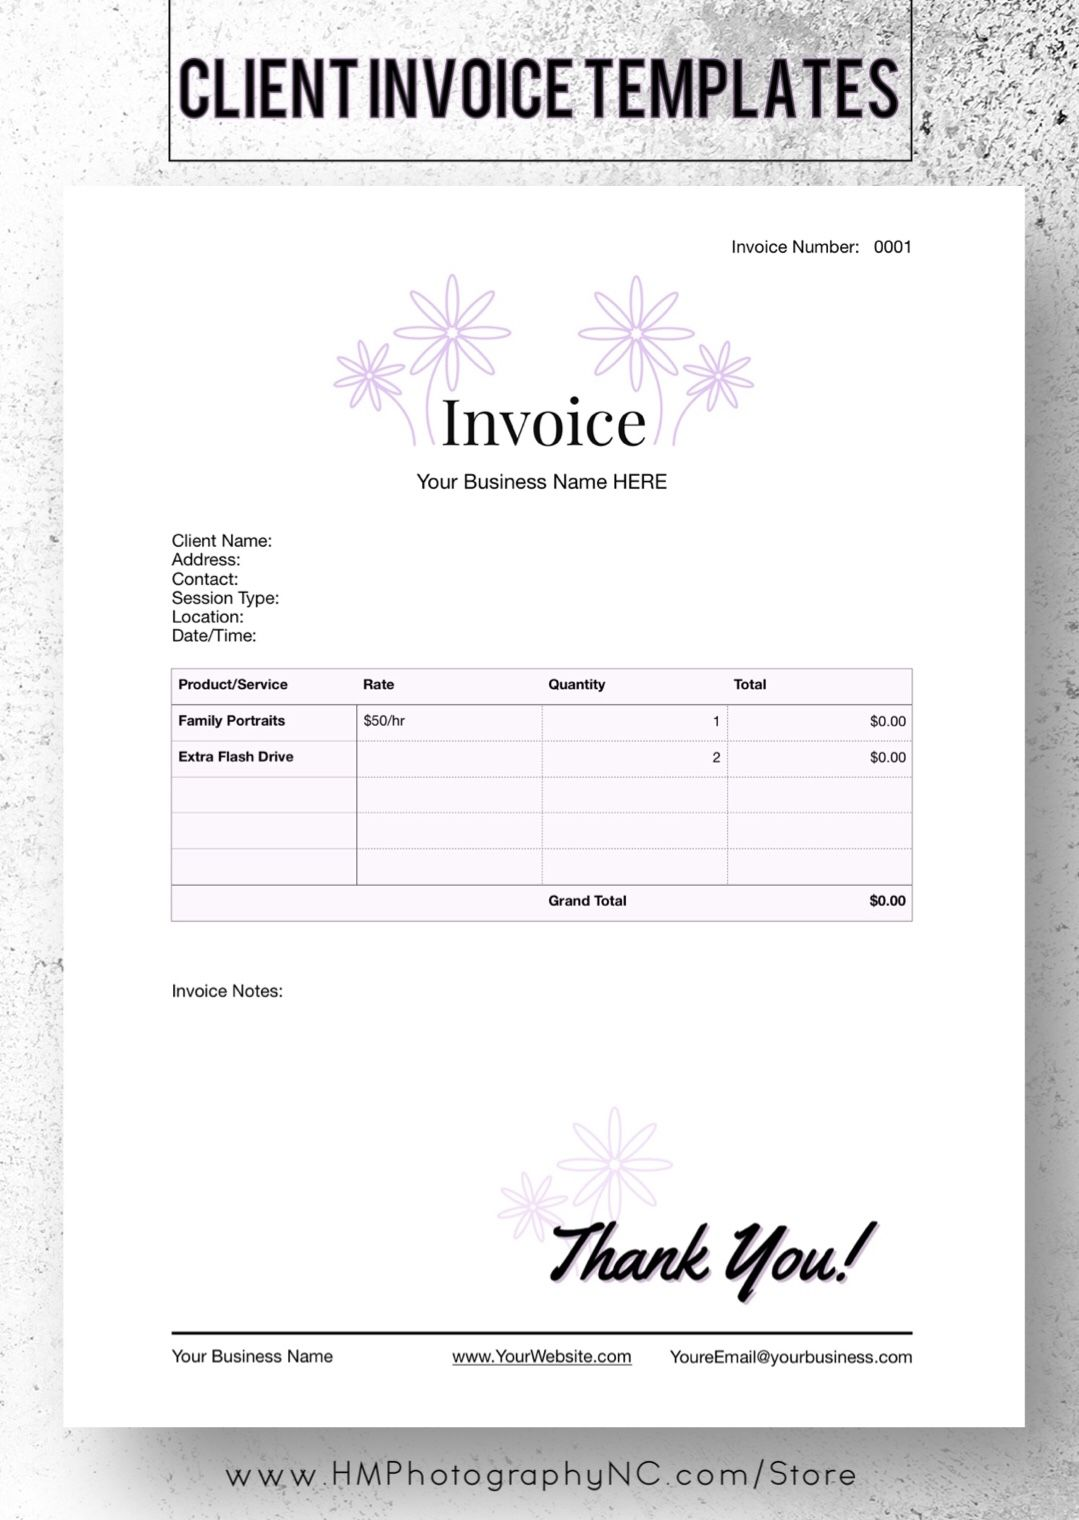 Free Download Business Templates Client Invoice Receipts Business Template Invoice Template Templates